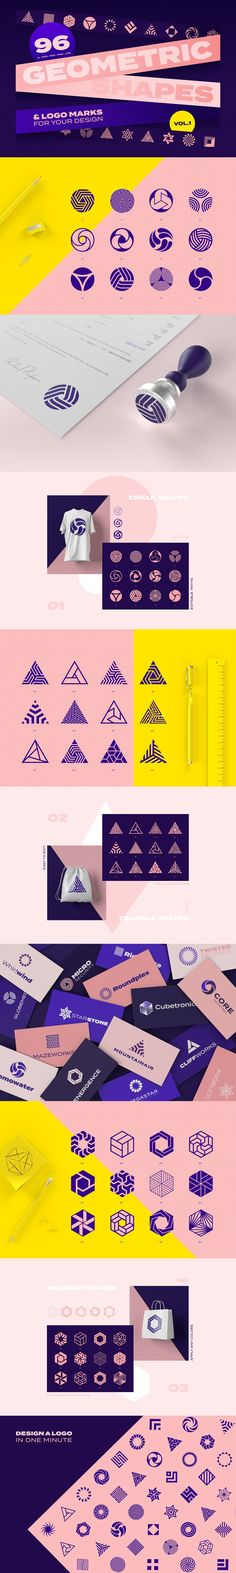 This set is an extensive collection of 96 Geometric shapes & logo marks inspired by the enduring power of clean, crisp and universally symbolic design language. E Design, Design Elements, Logo Design, Media Design, Lettering Design, Branding, Brand Identity, Logos Ideas, Presentation Software